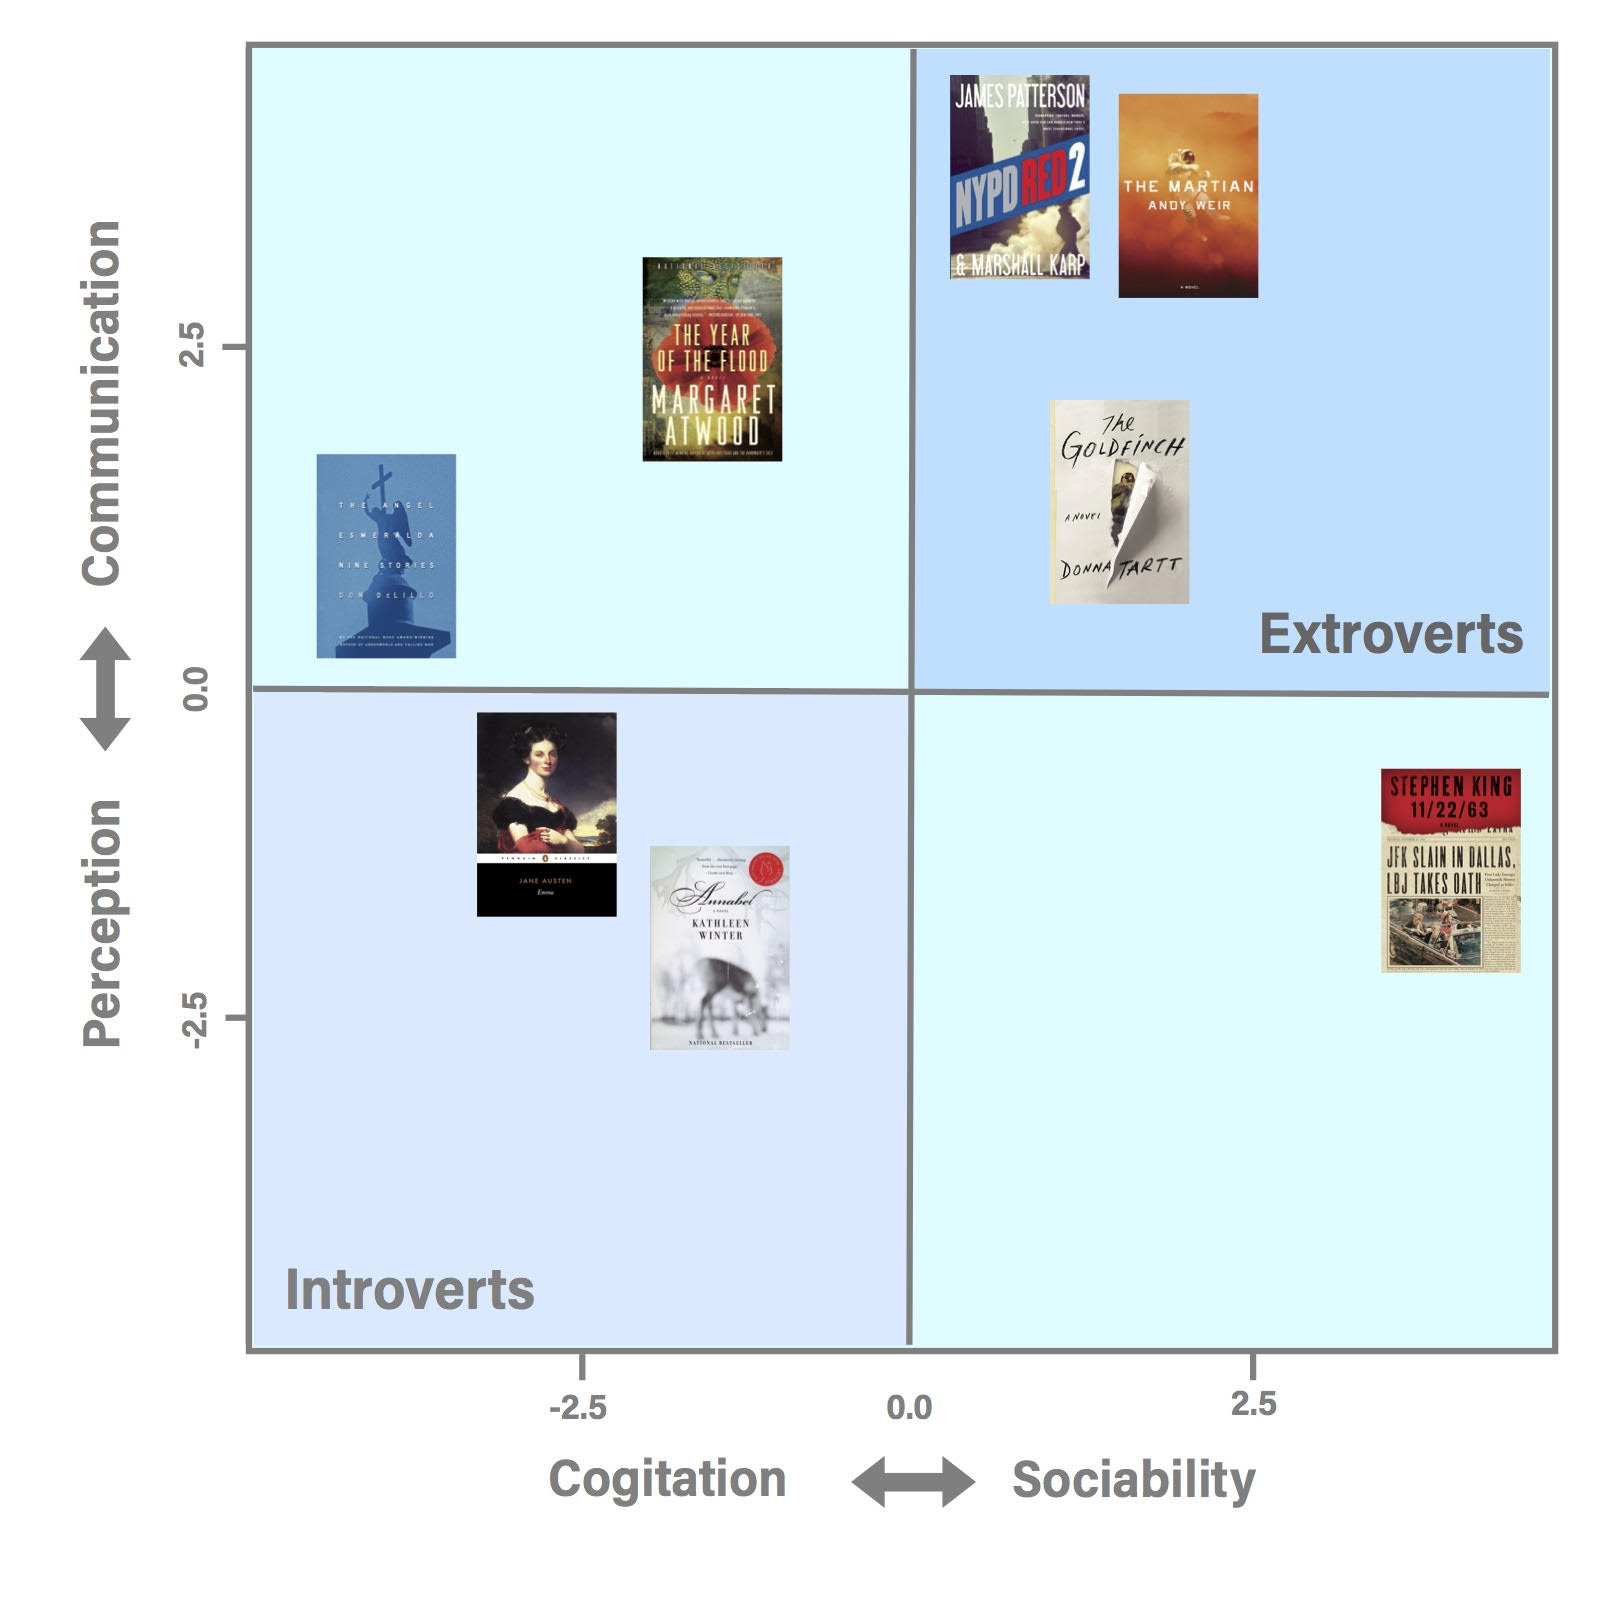 In this graph, you can see a plot of main characters from well-known books based on their qualities of extroversion versus introversion.